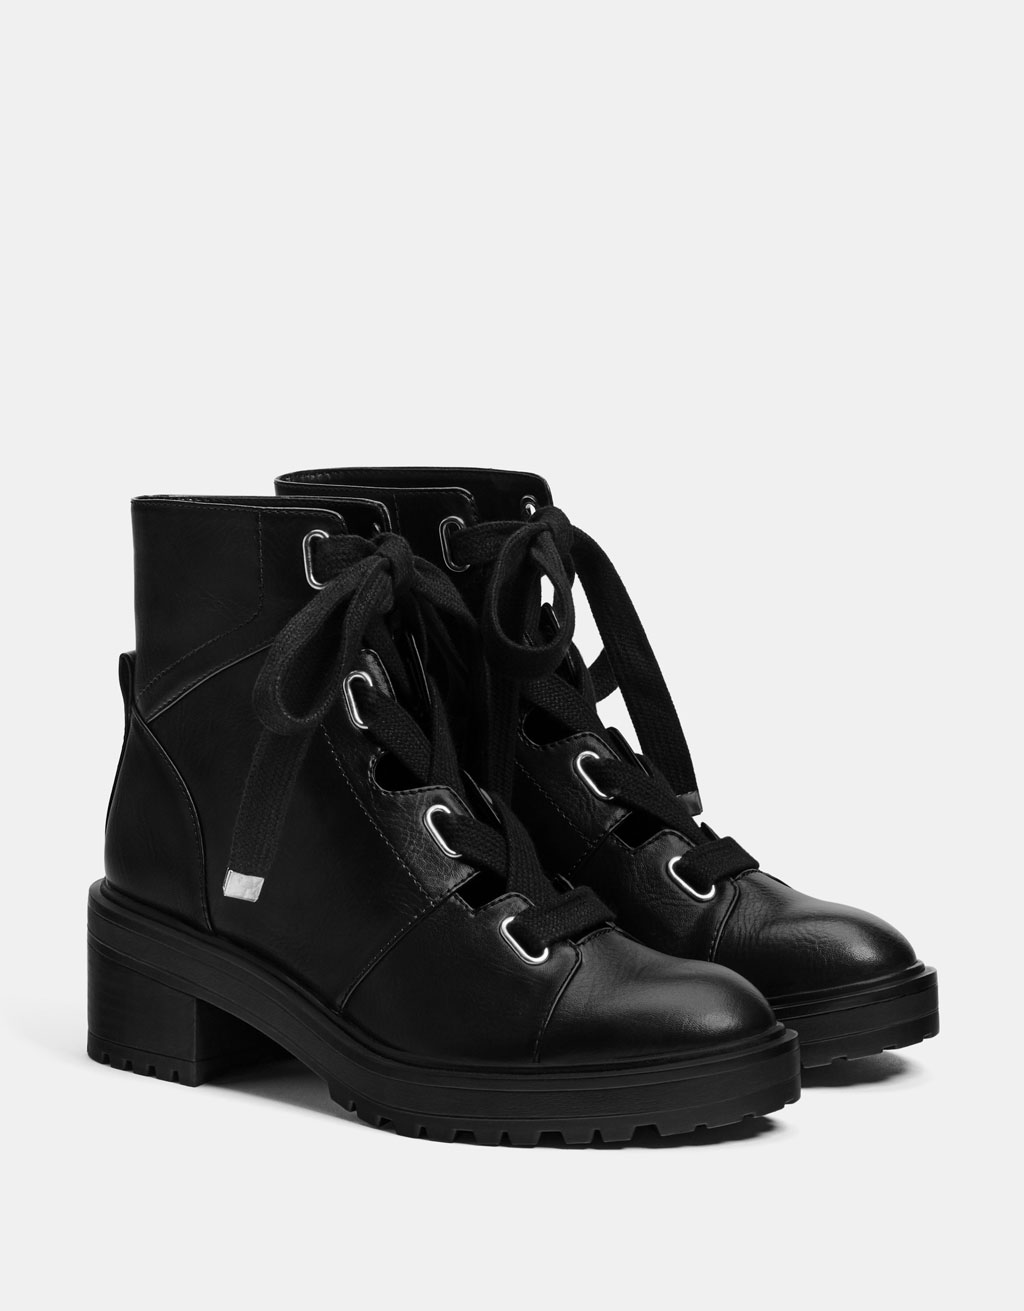 Cut-out ankle boots with eyelets